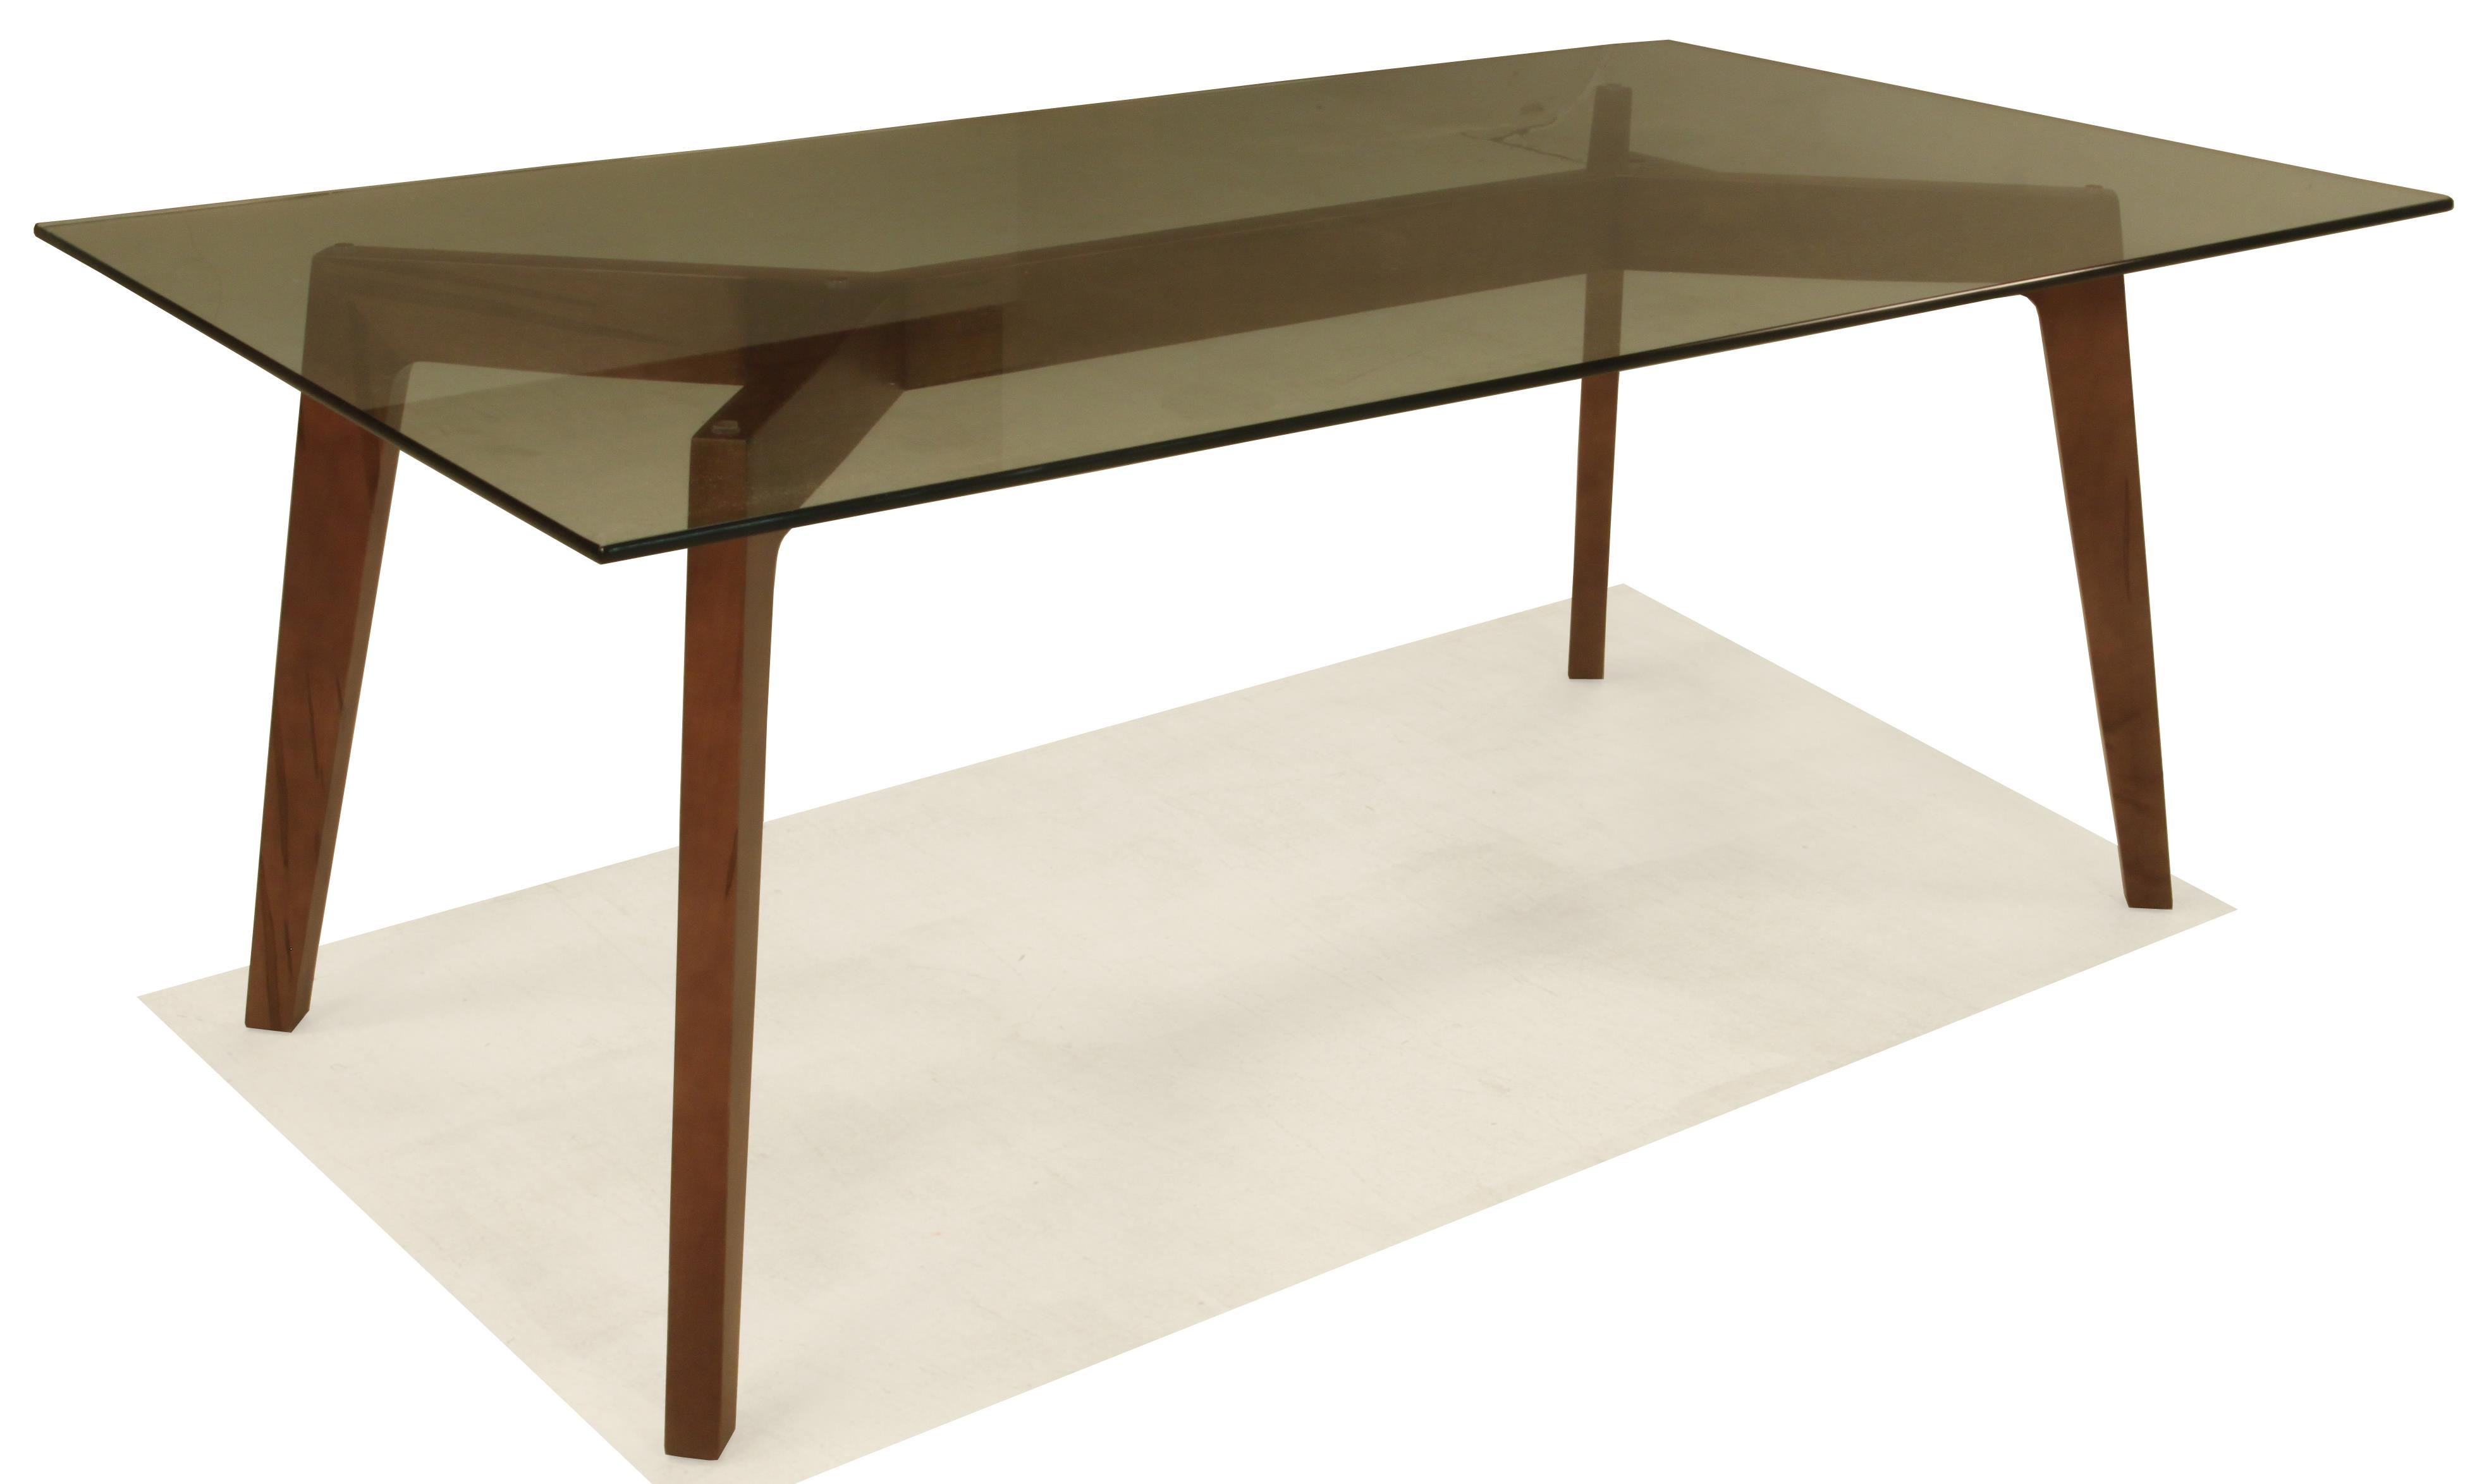 BeModern 15DT Dining Table with Glass Top - Item Number: 15DT-05